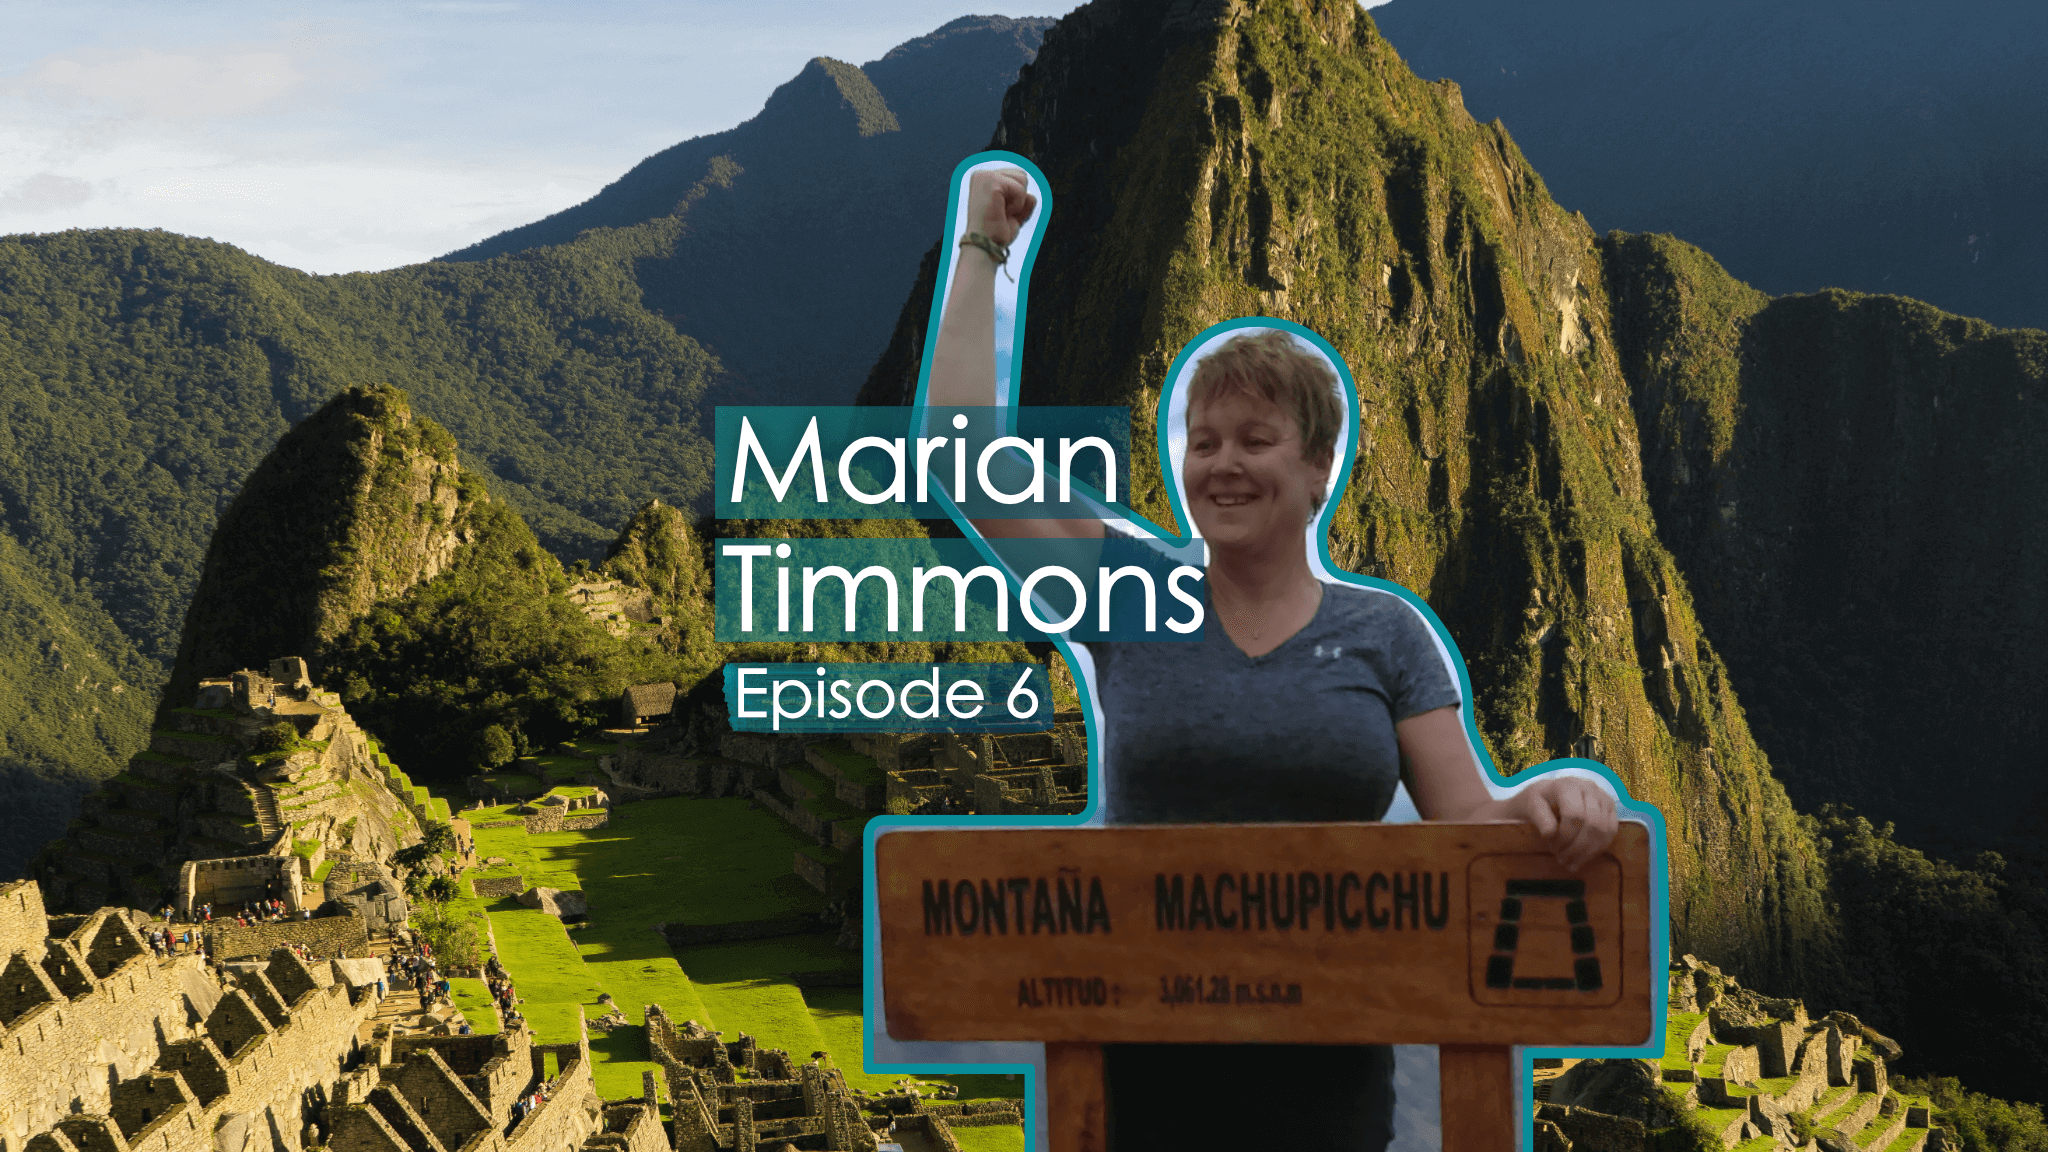 Earth's Edge Podcast Marian Timmons